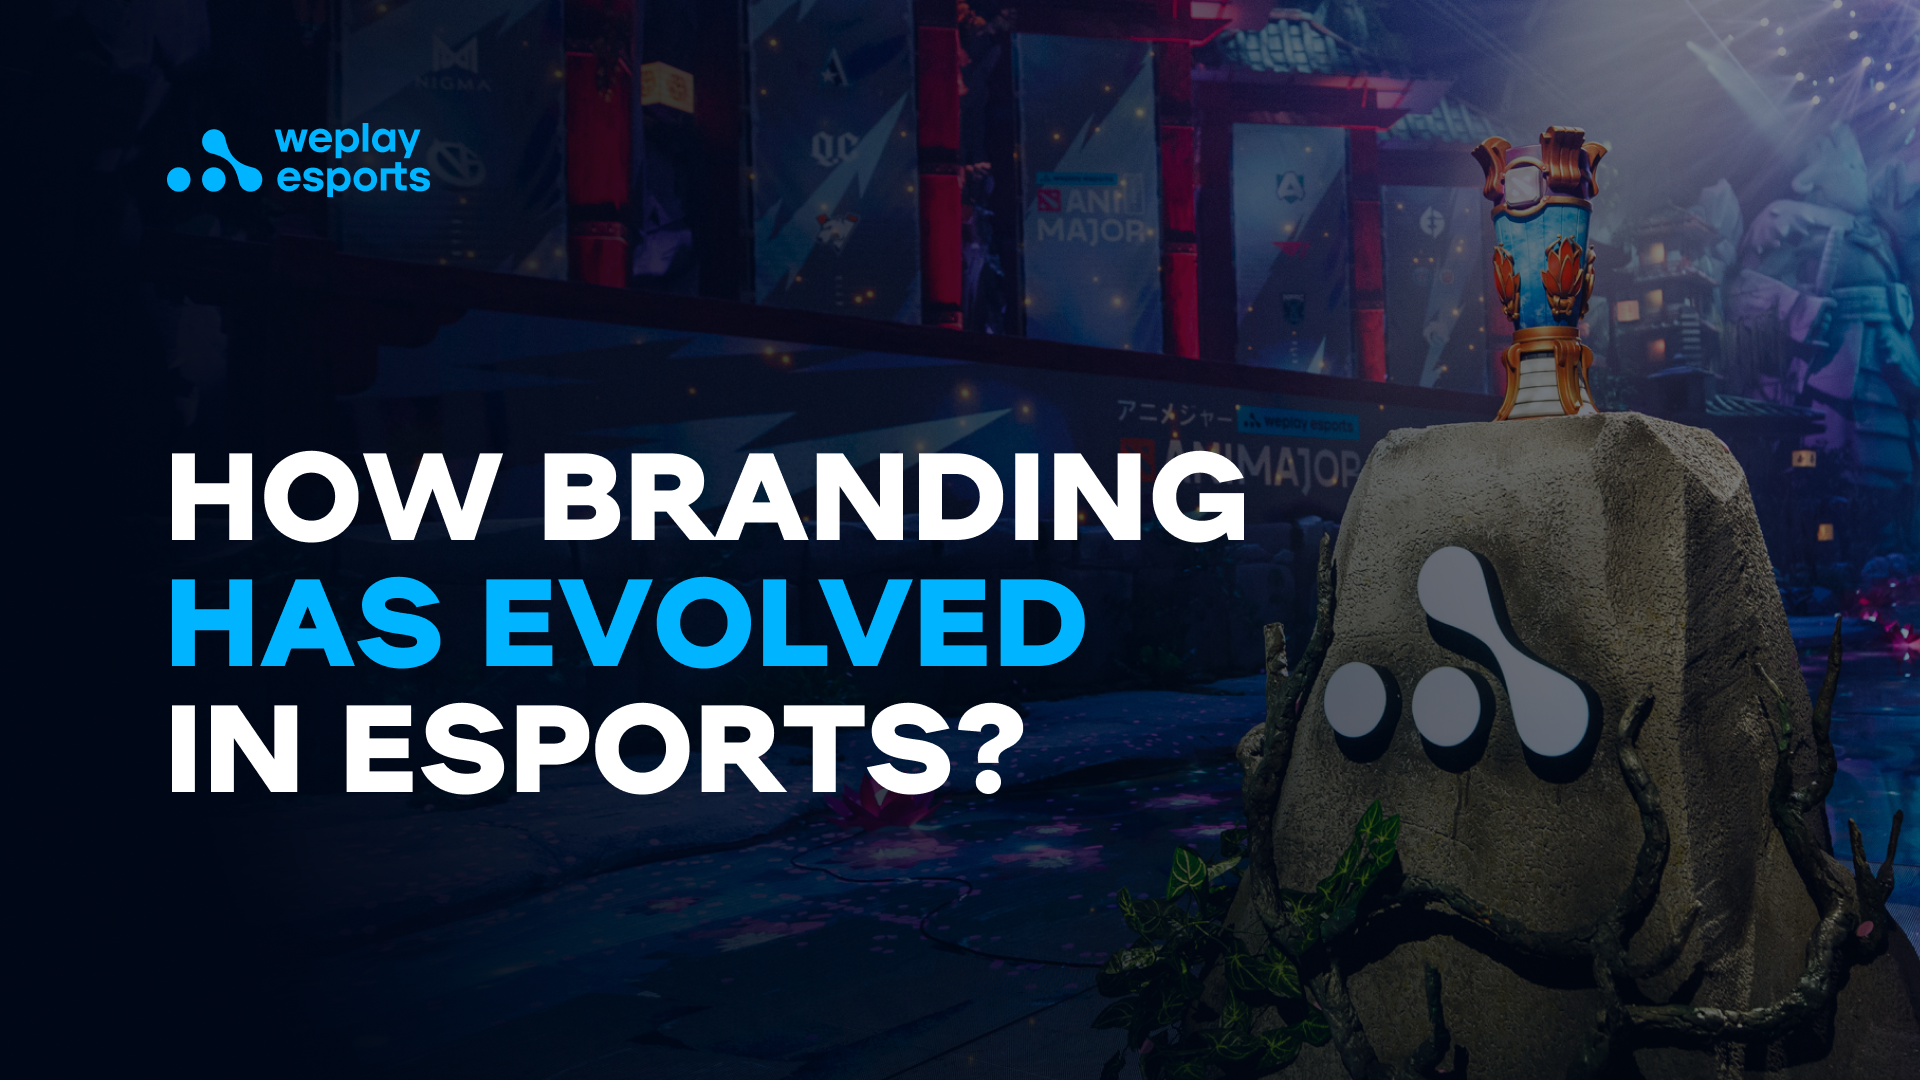 How branding has evolved in esports?